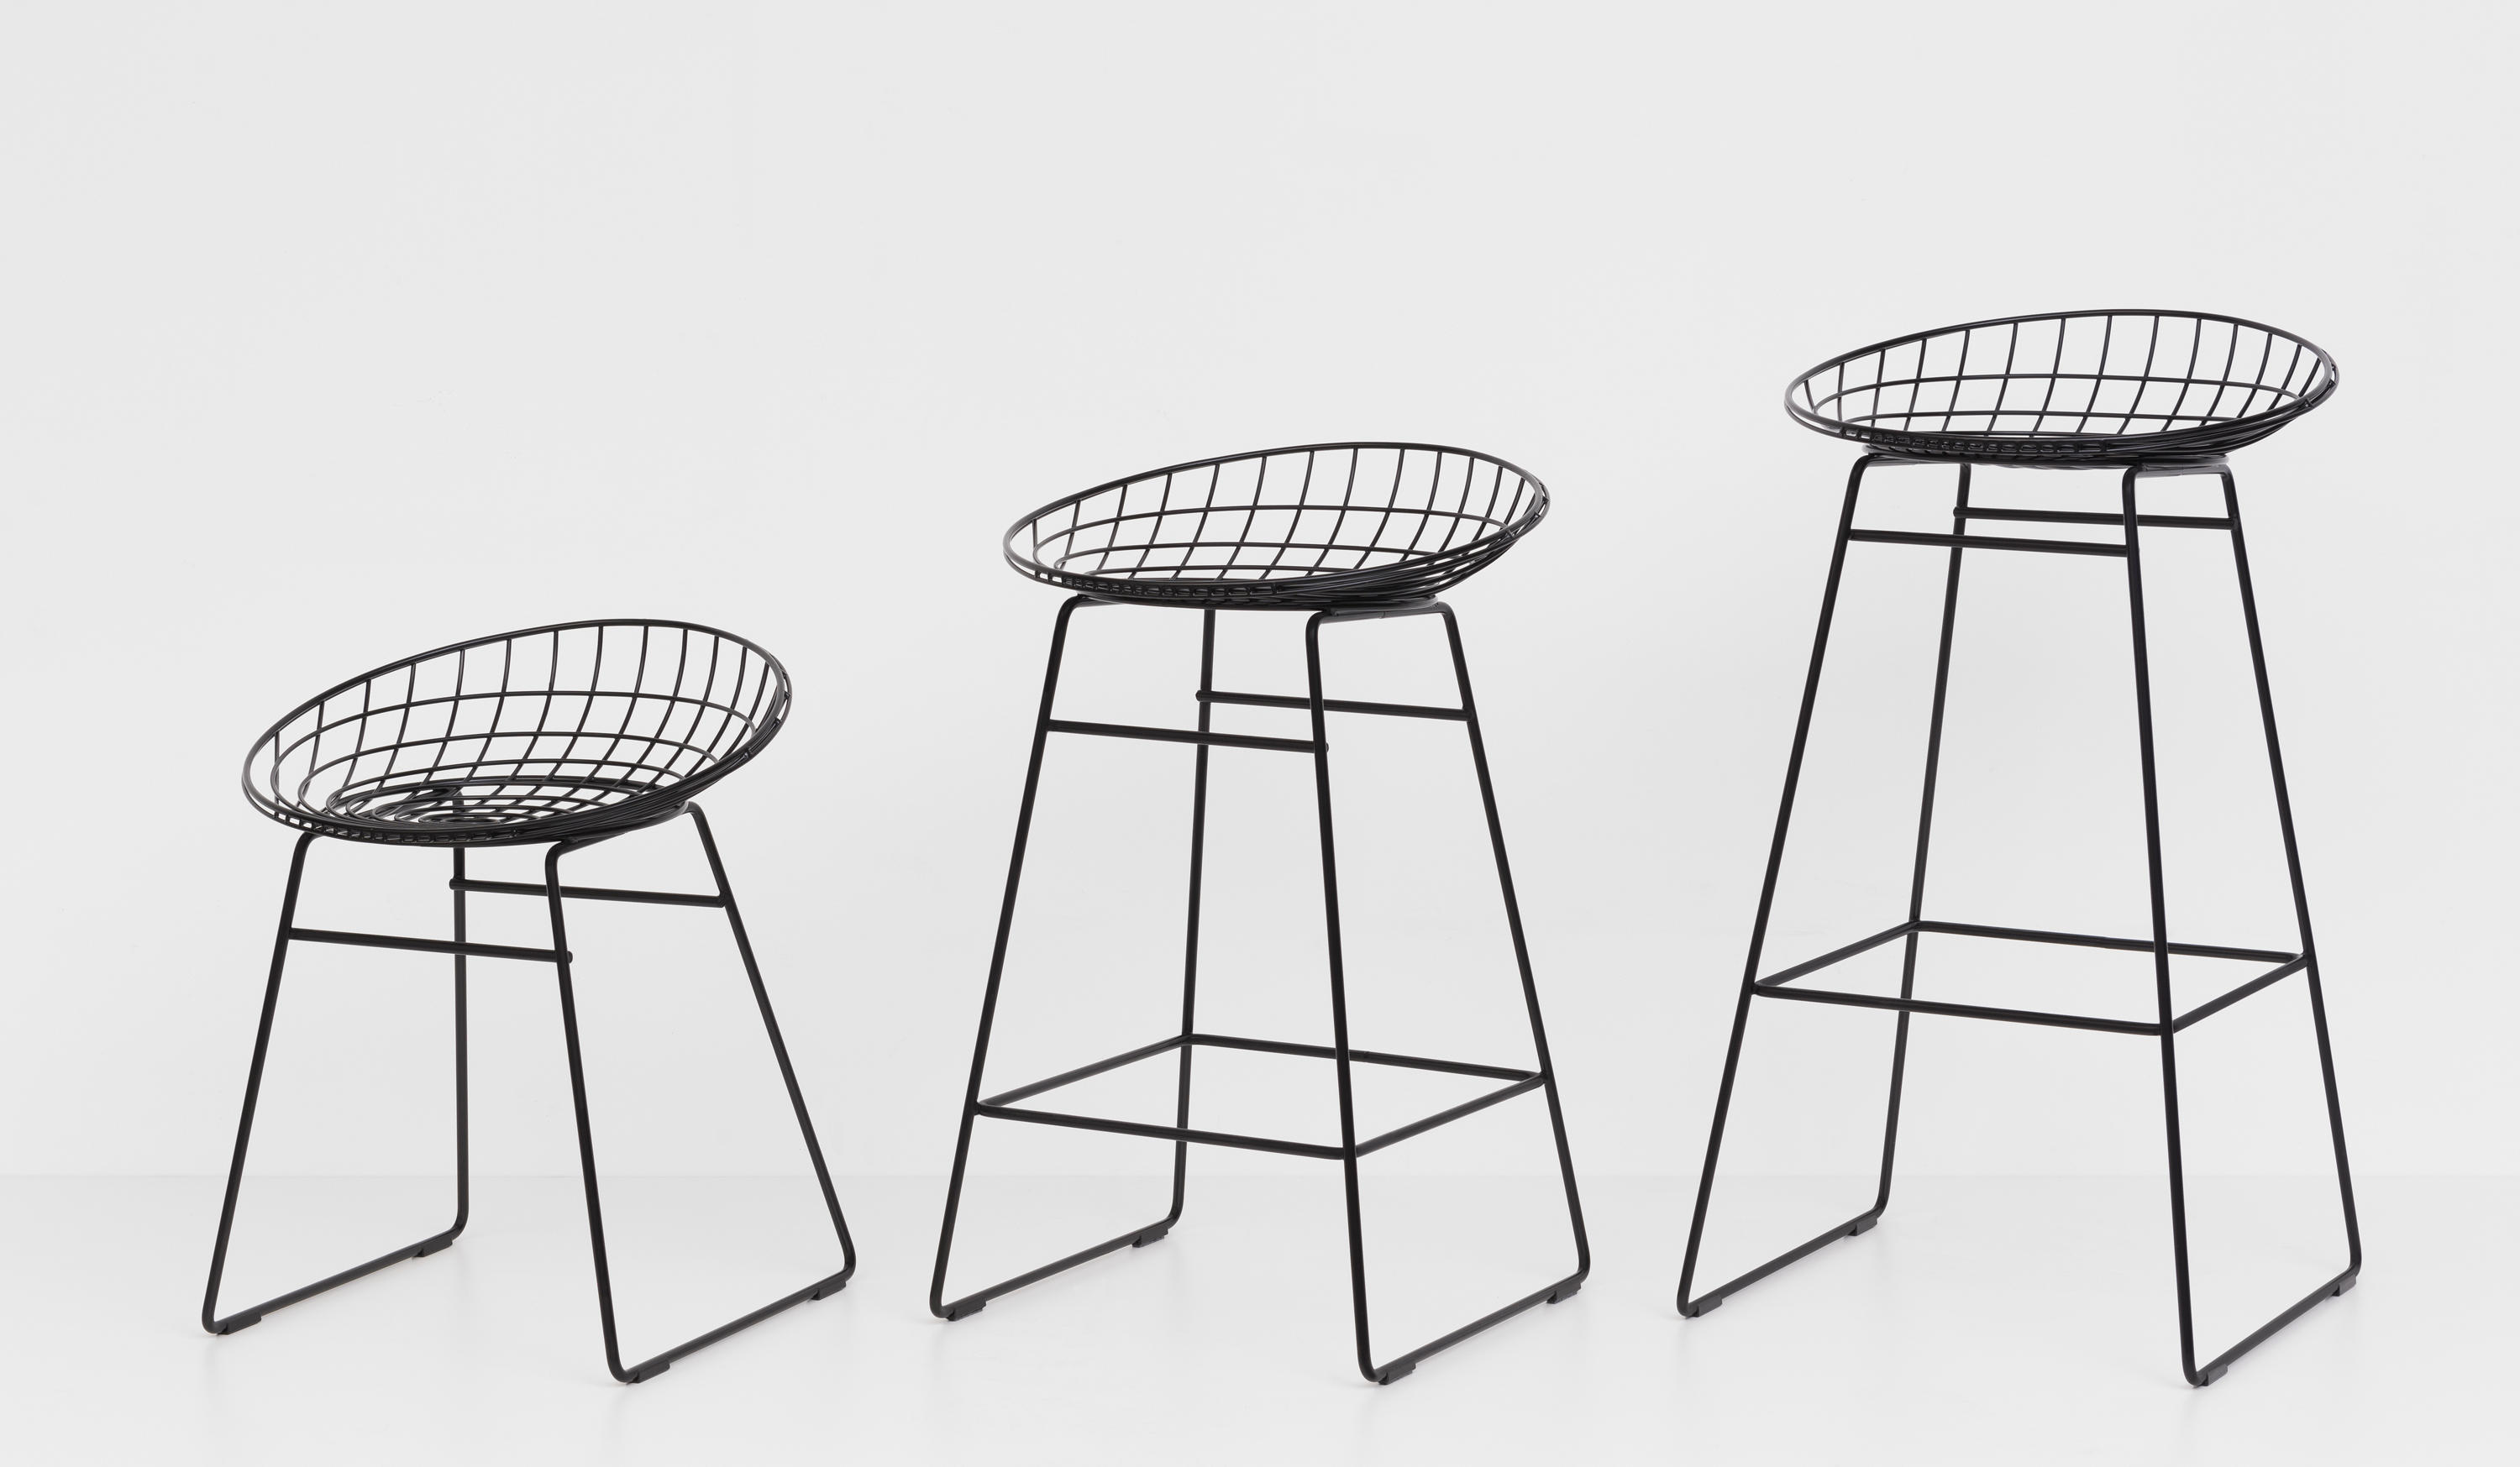 WIRE CHAIR SM05 Restaurant chairs from Pastoe